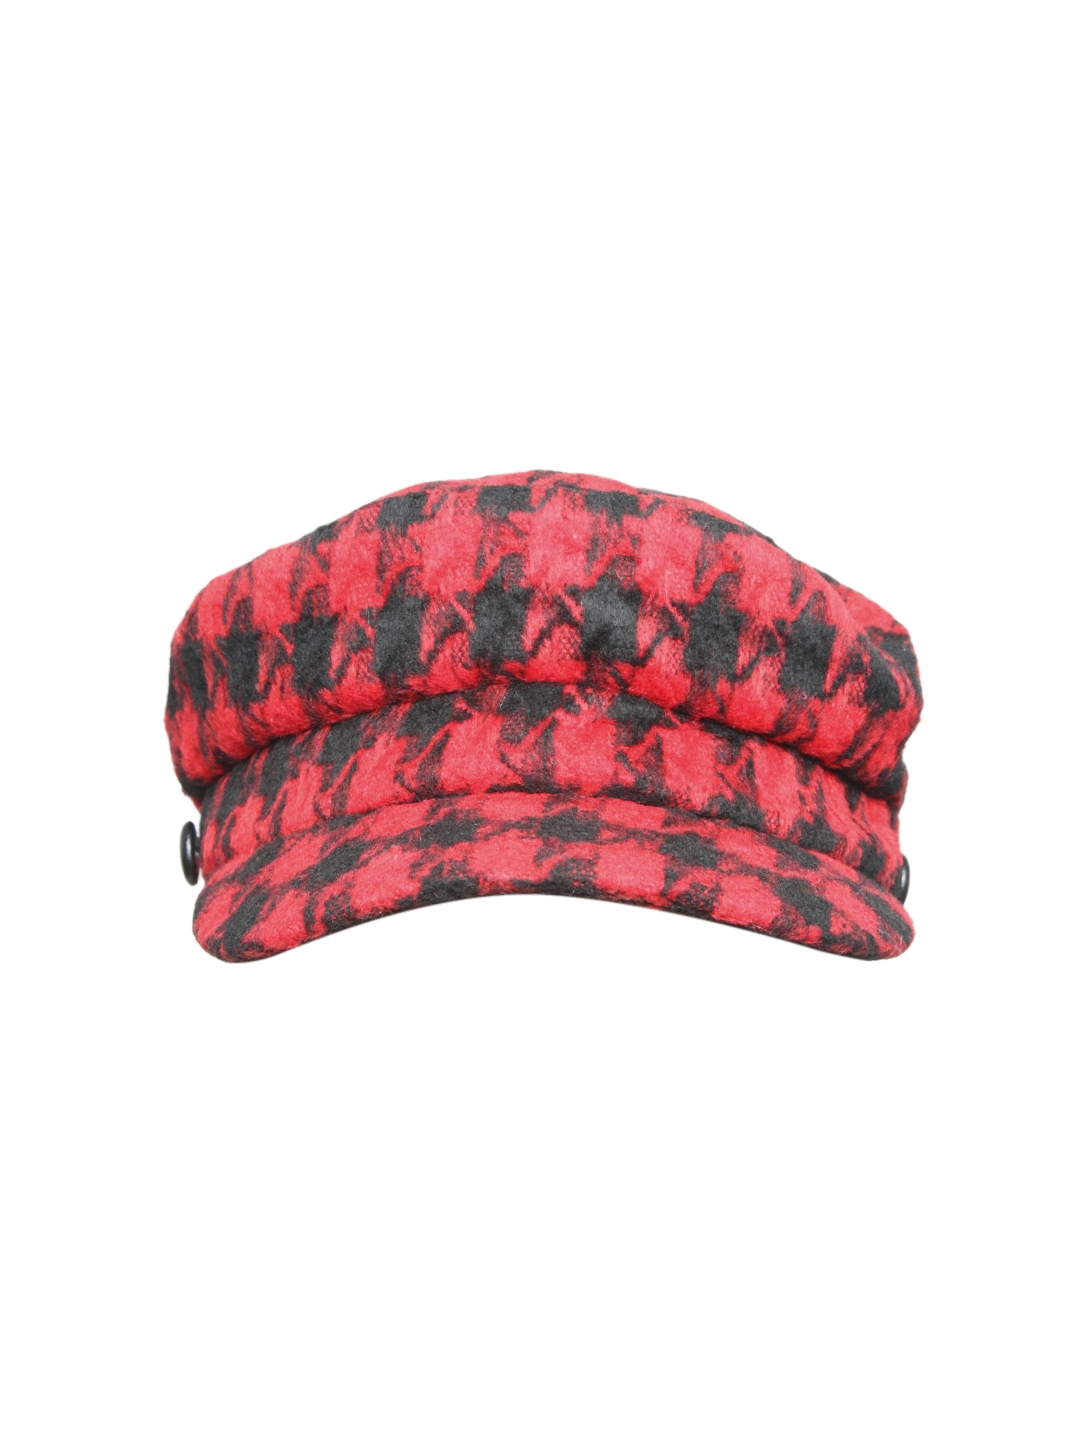 ebae395bb91 Buy FOREVER 21 Women Red   Black Houndstooth Cabby Hat - Hat for ...